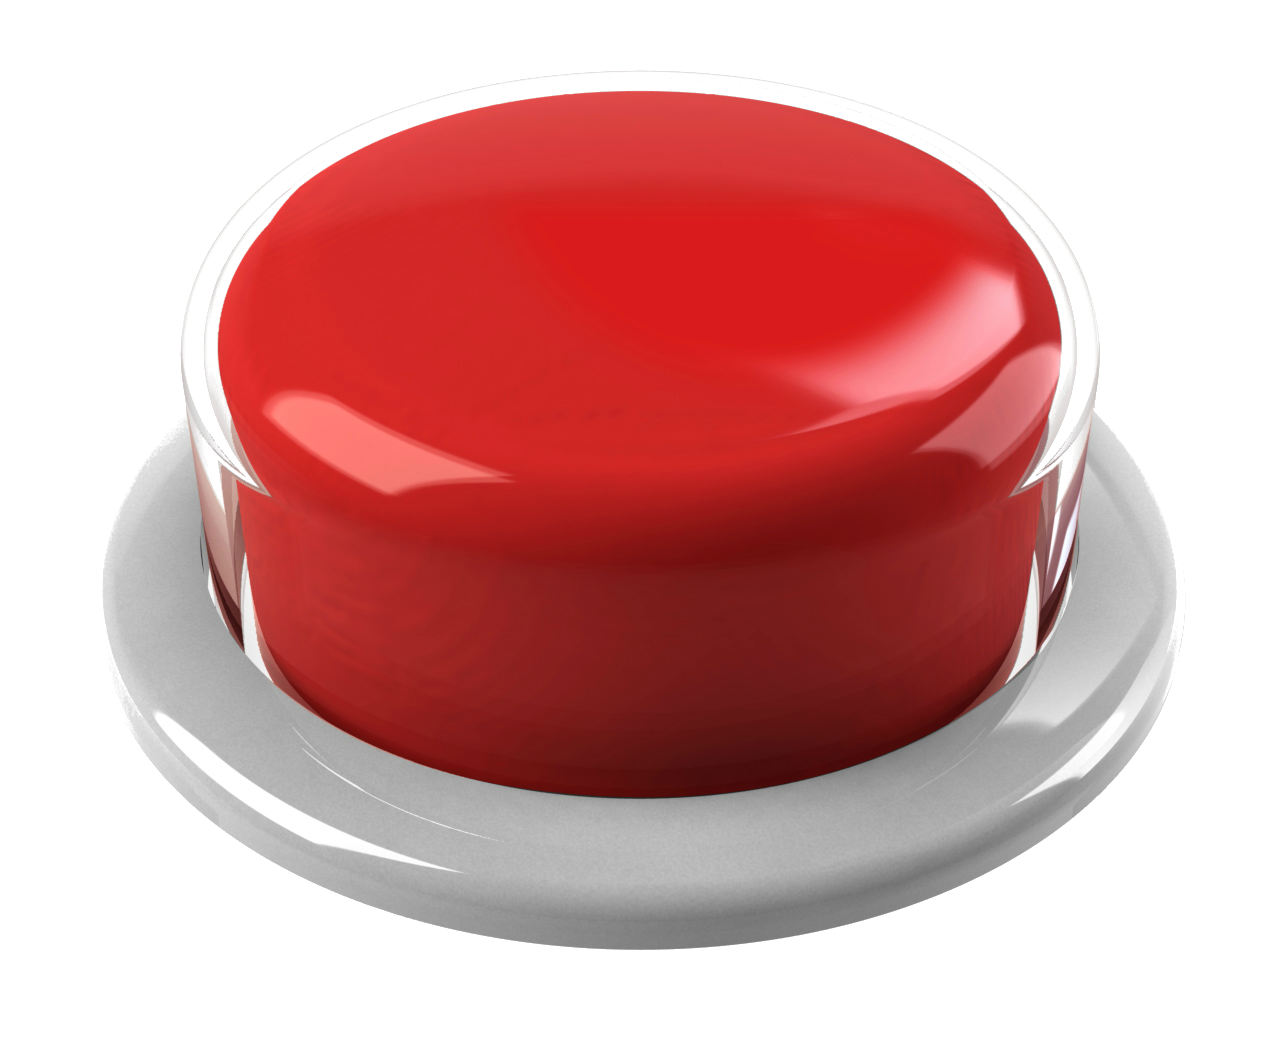 stop-button.png